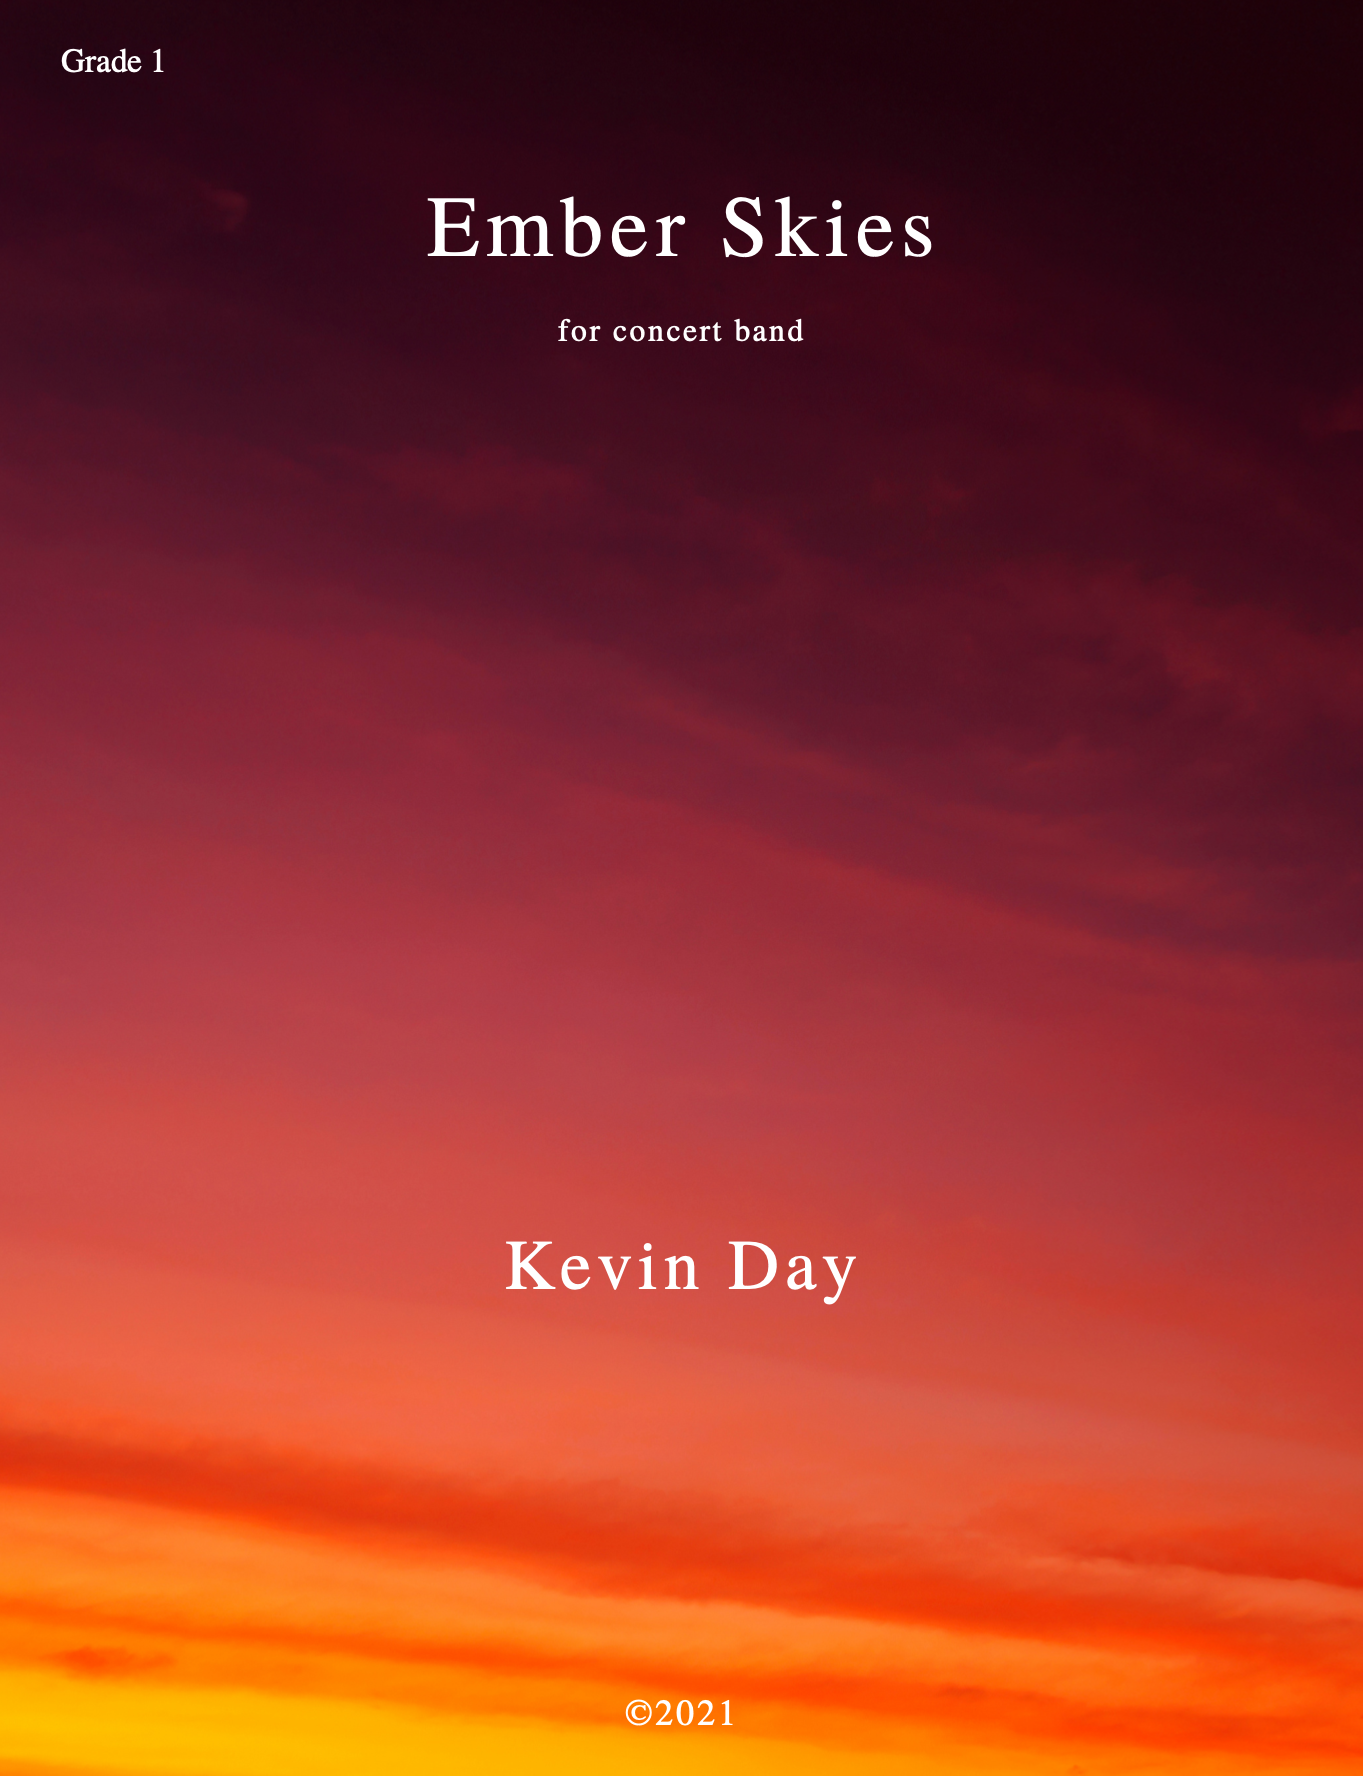 Ember Skies (Score Only) by Kevin Day